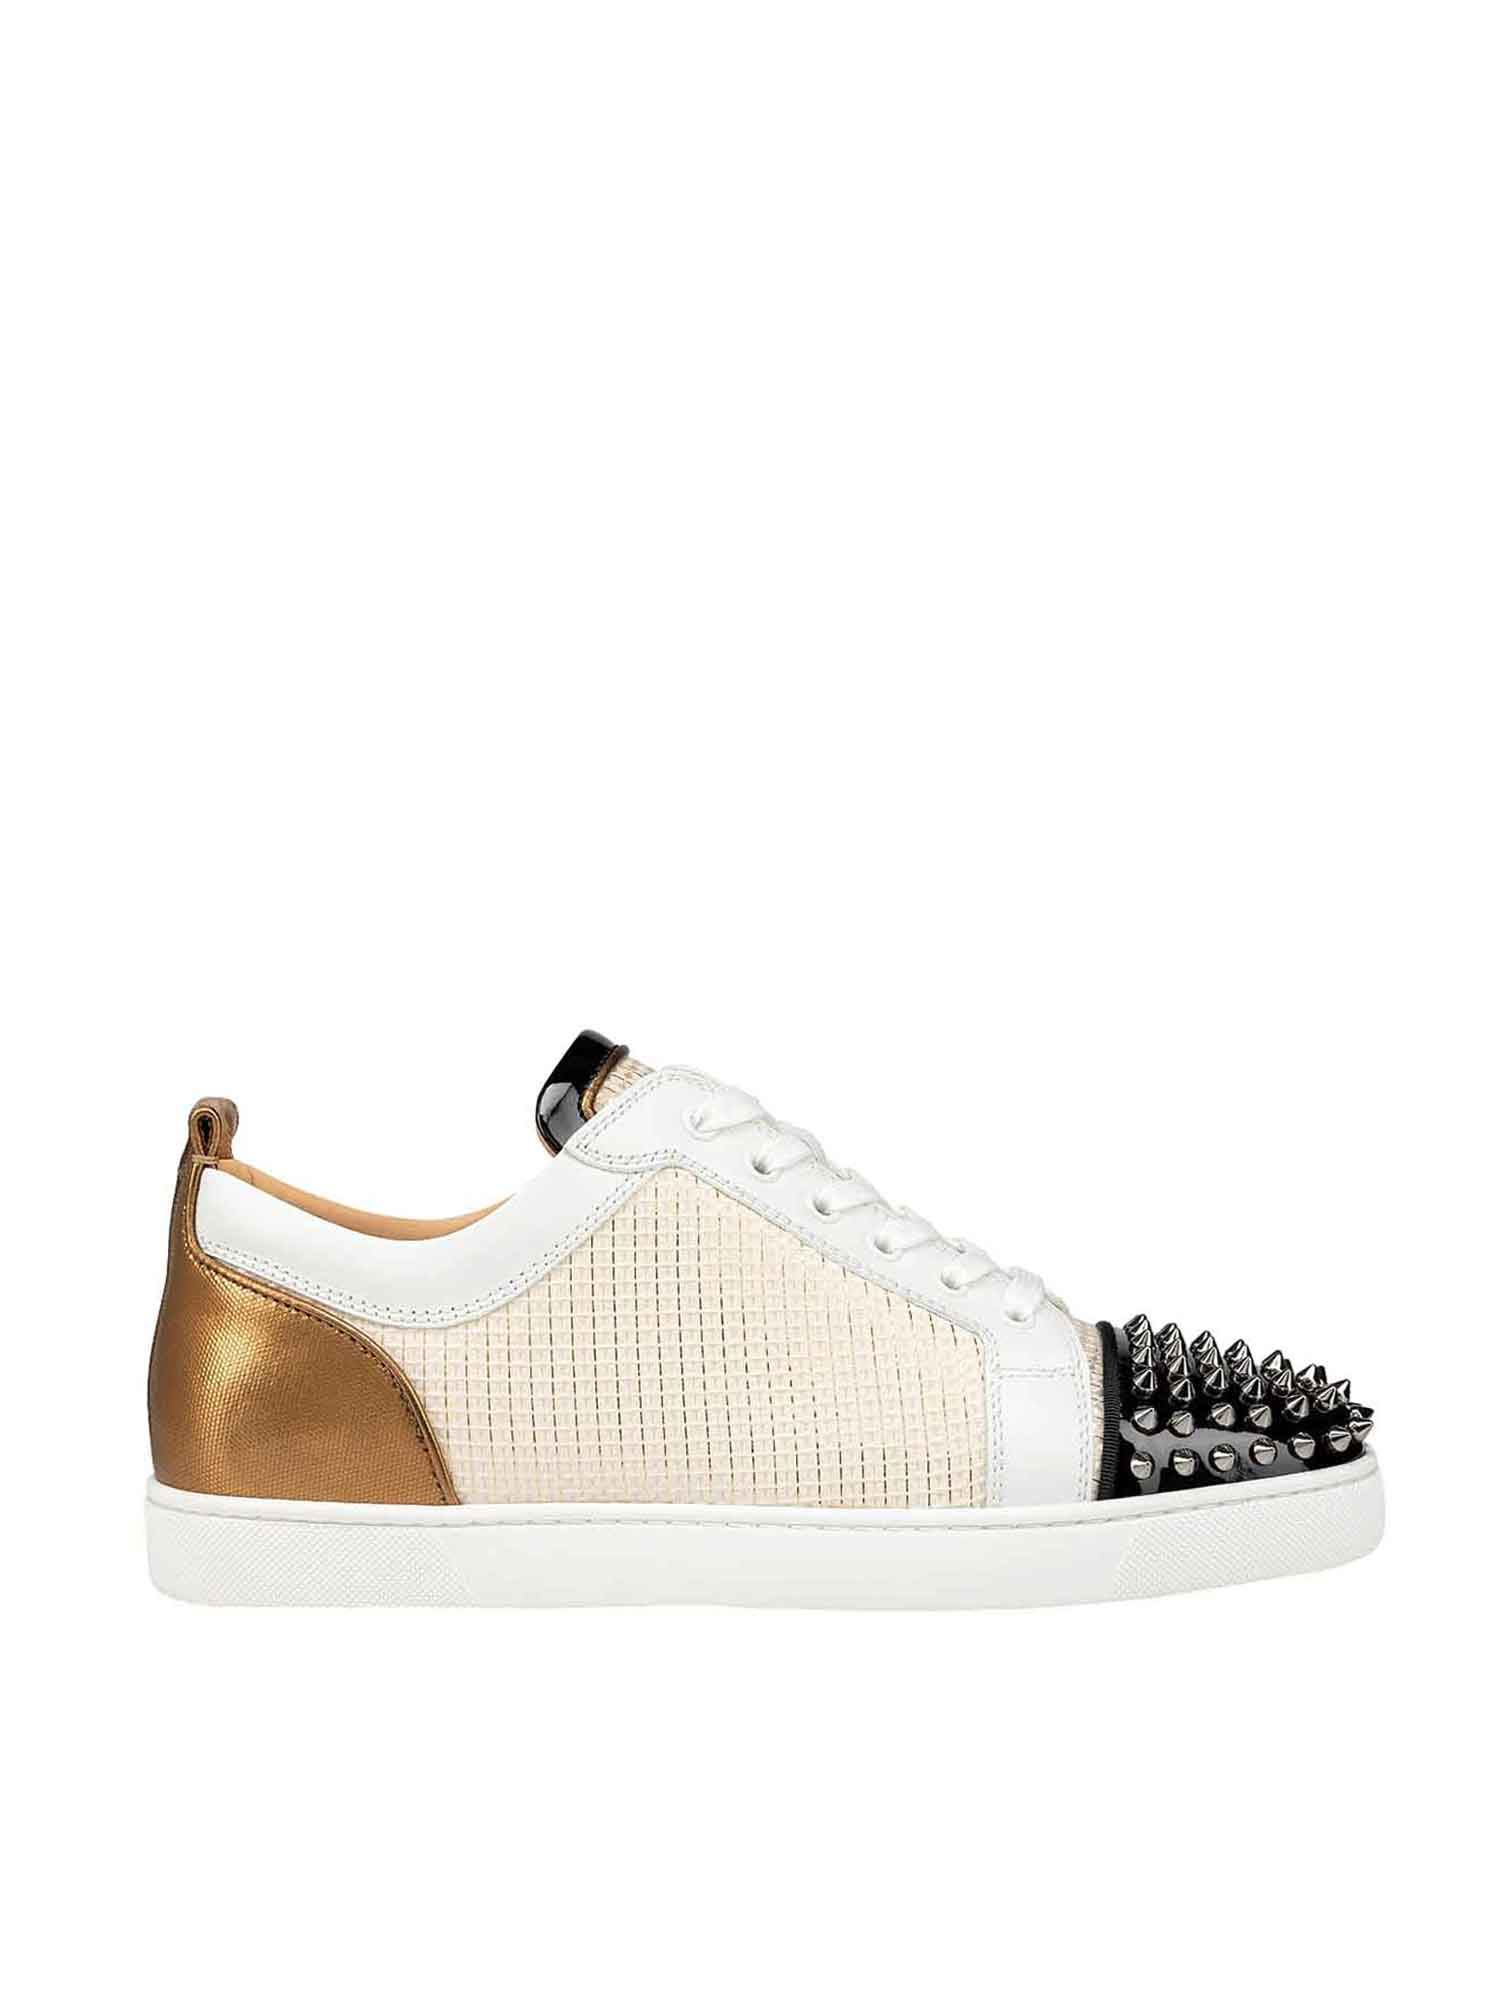 Christian Louboutin LOUIS JUNIOR SPIKES ORLATO STUDDED SNEAKERS IN BEI